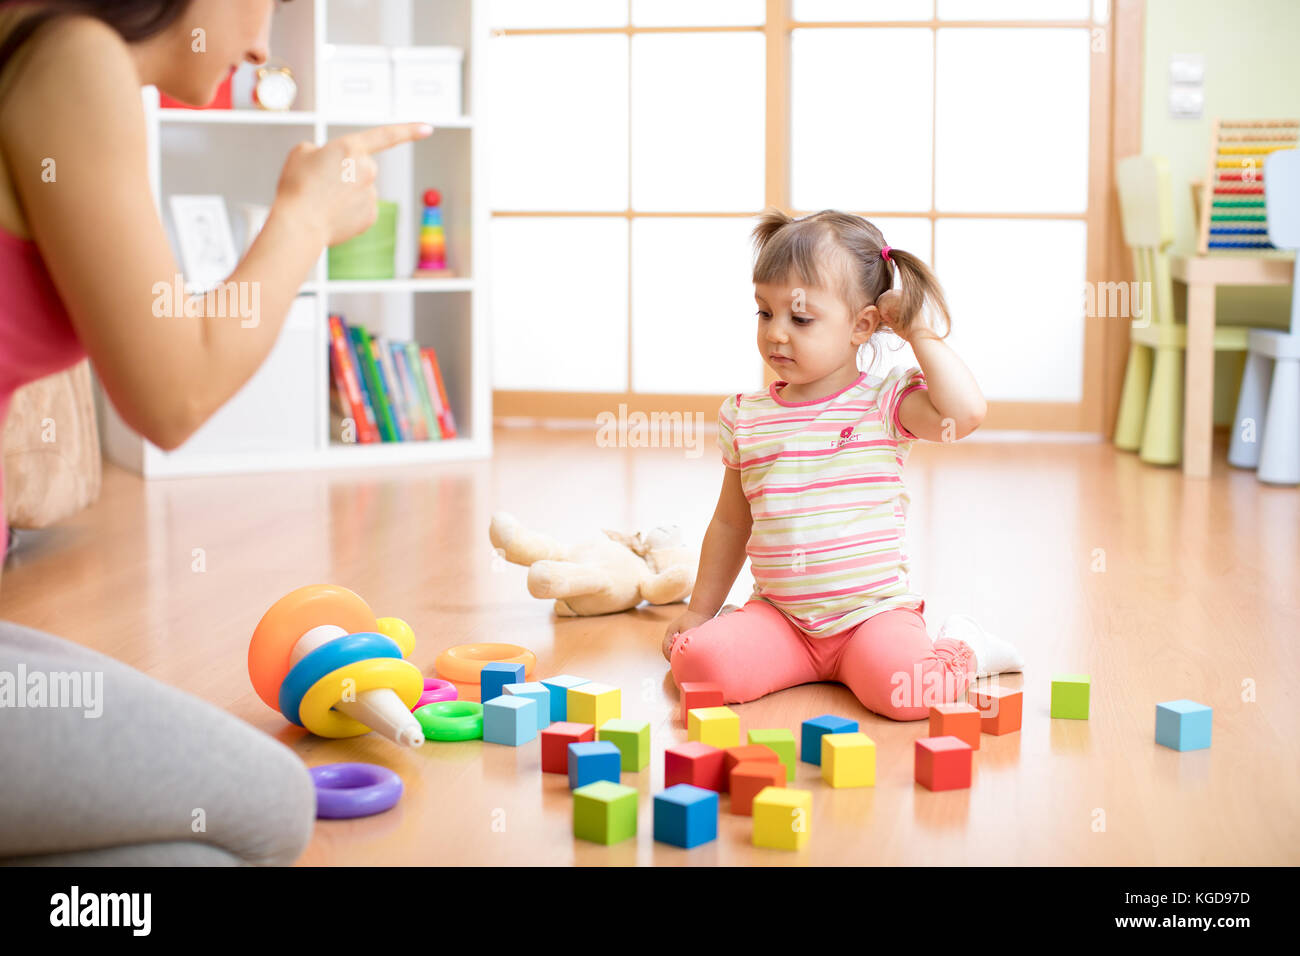 Mother see her daughter play toys messy up the living room feel angry and criticize the sadness kid girl at home. - Stock Image